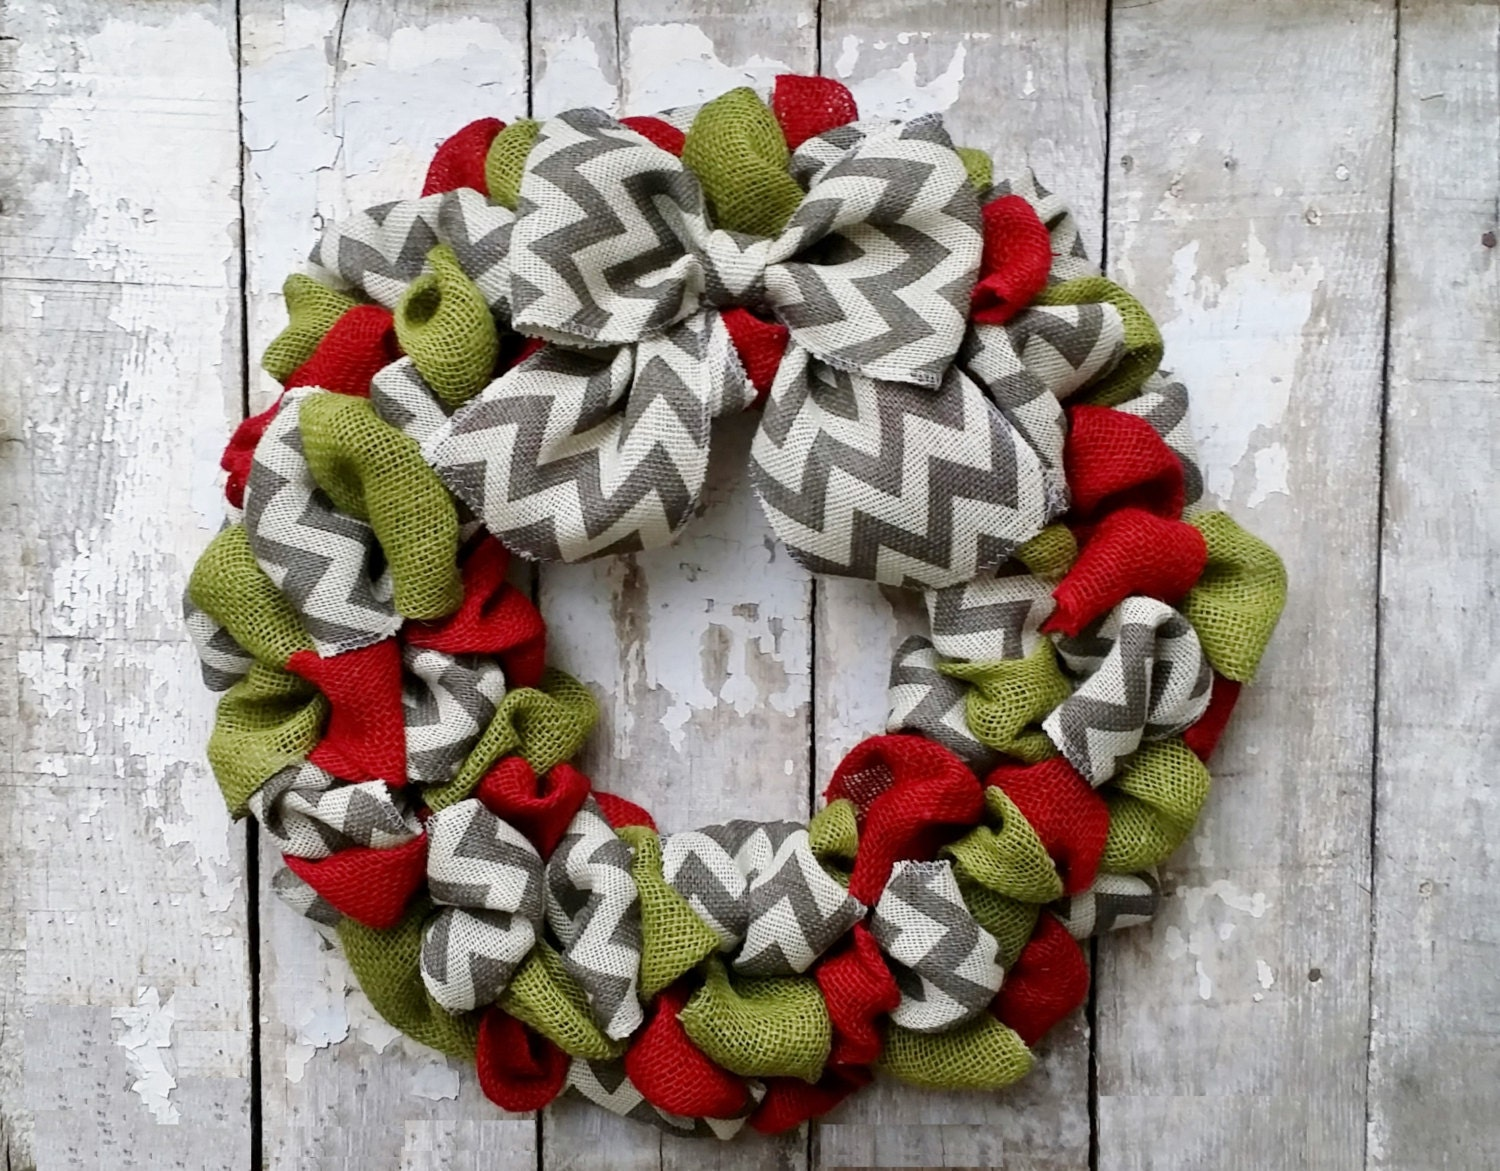 Chevron Burlap Christmas Wreath Holiday Wreath By Burlapblooms: burlap xmas wreath